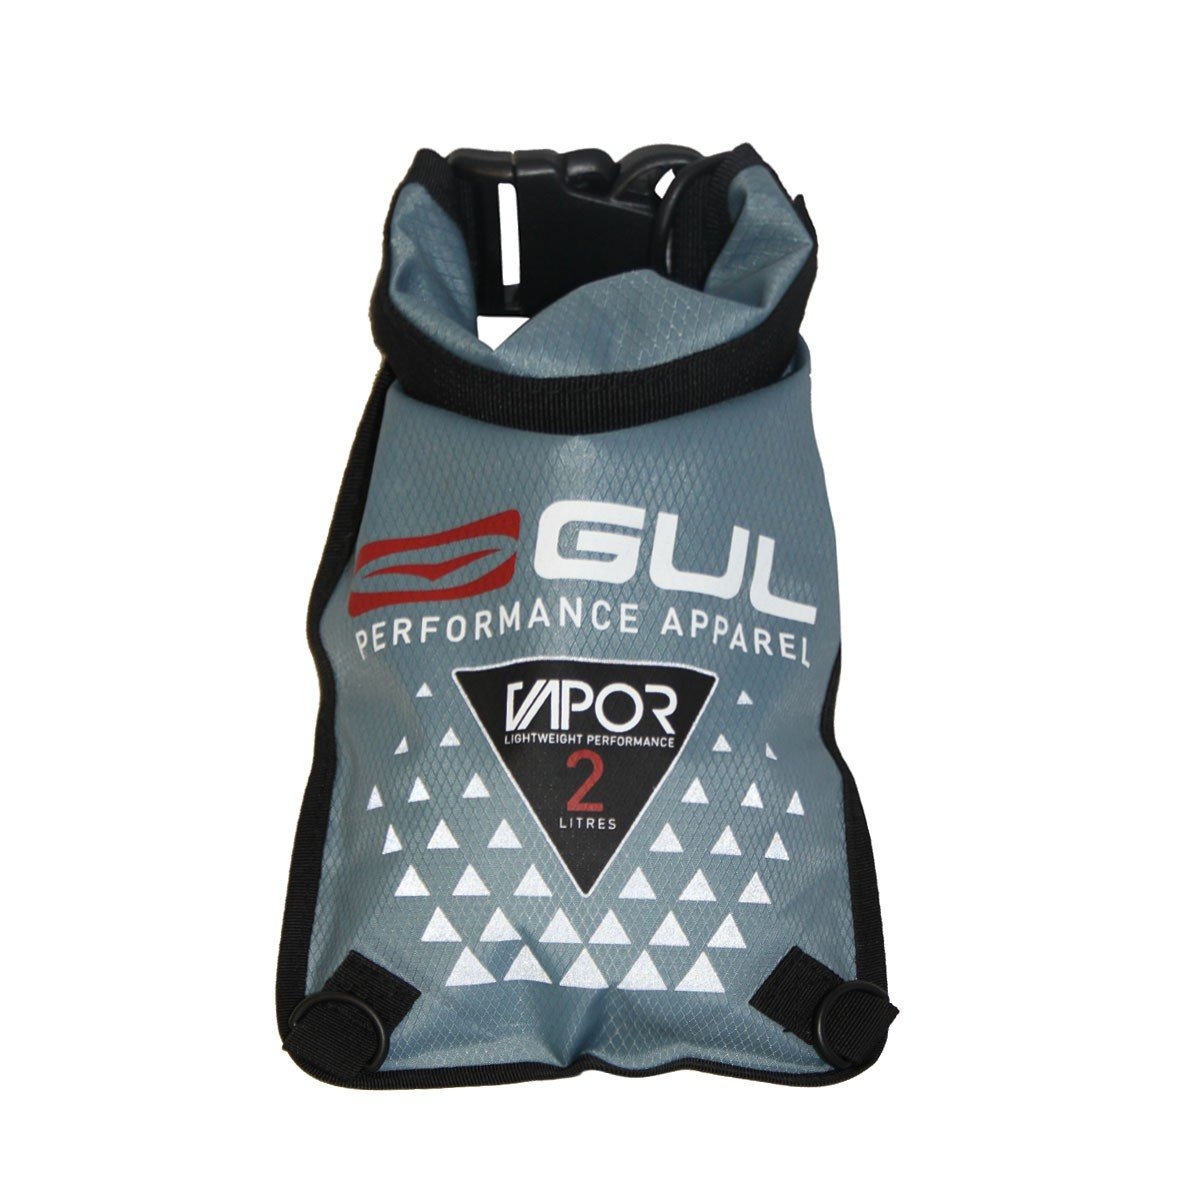 Gul 2l Vapor Light Weight Dry Bag    Lu0162-A3